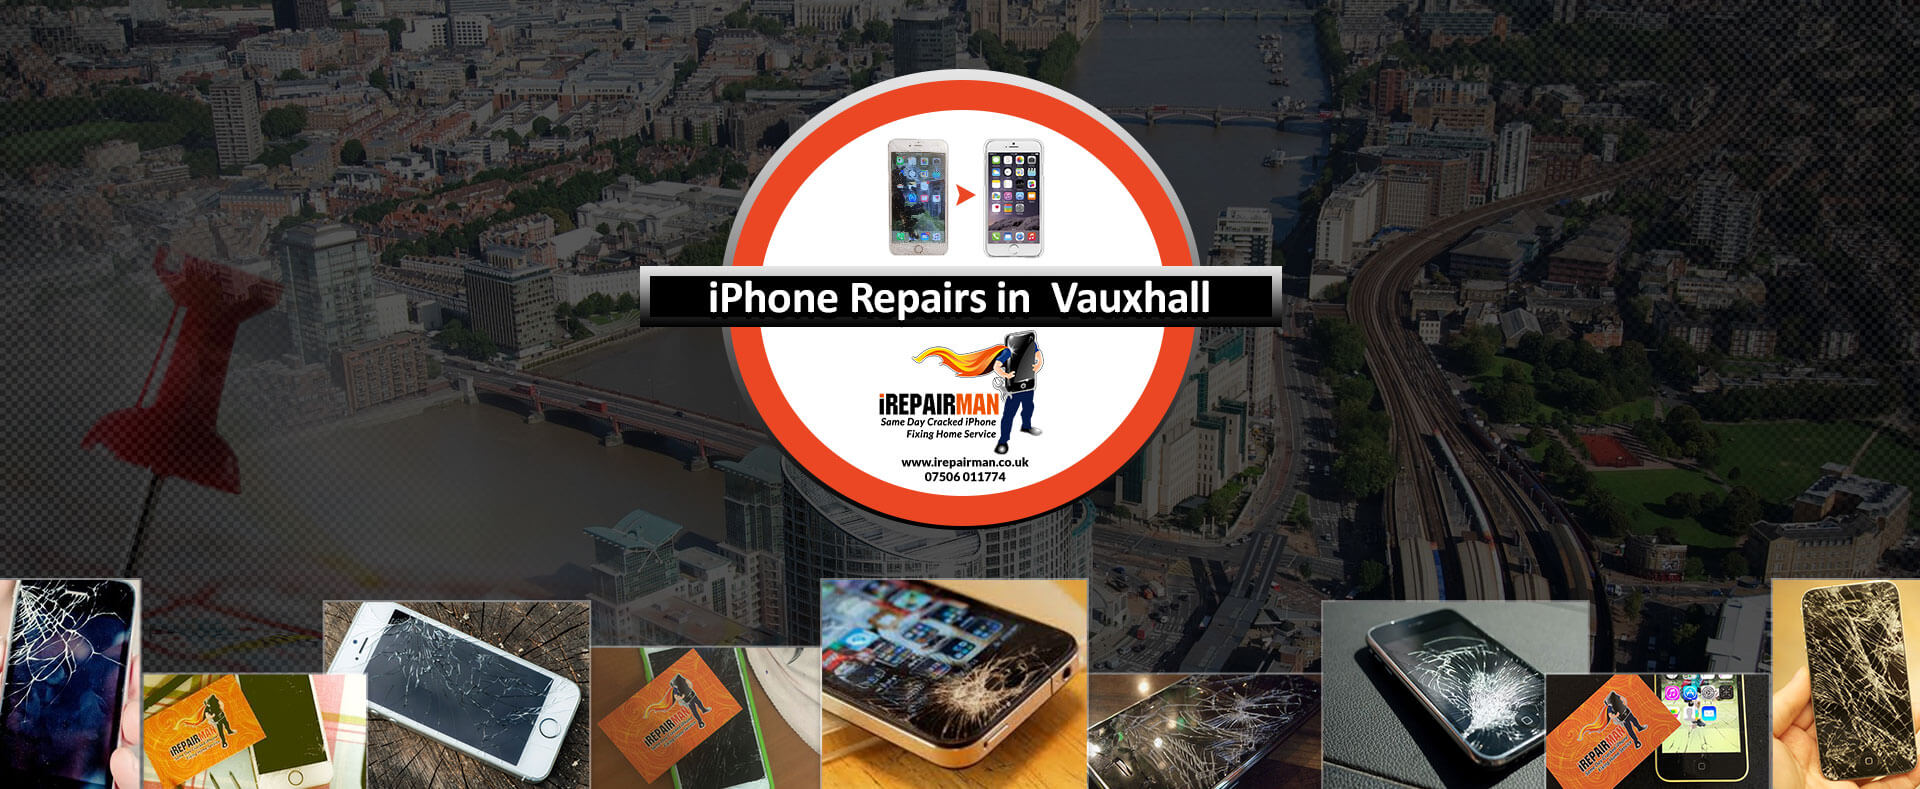 iPhone Repairs in Vauxhall